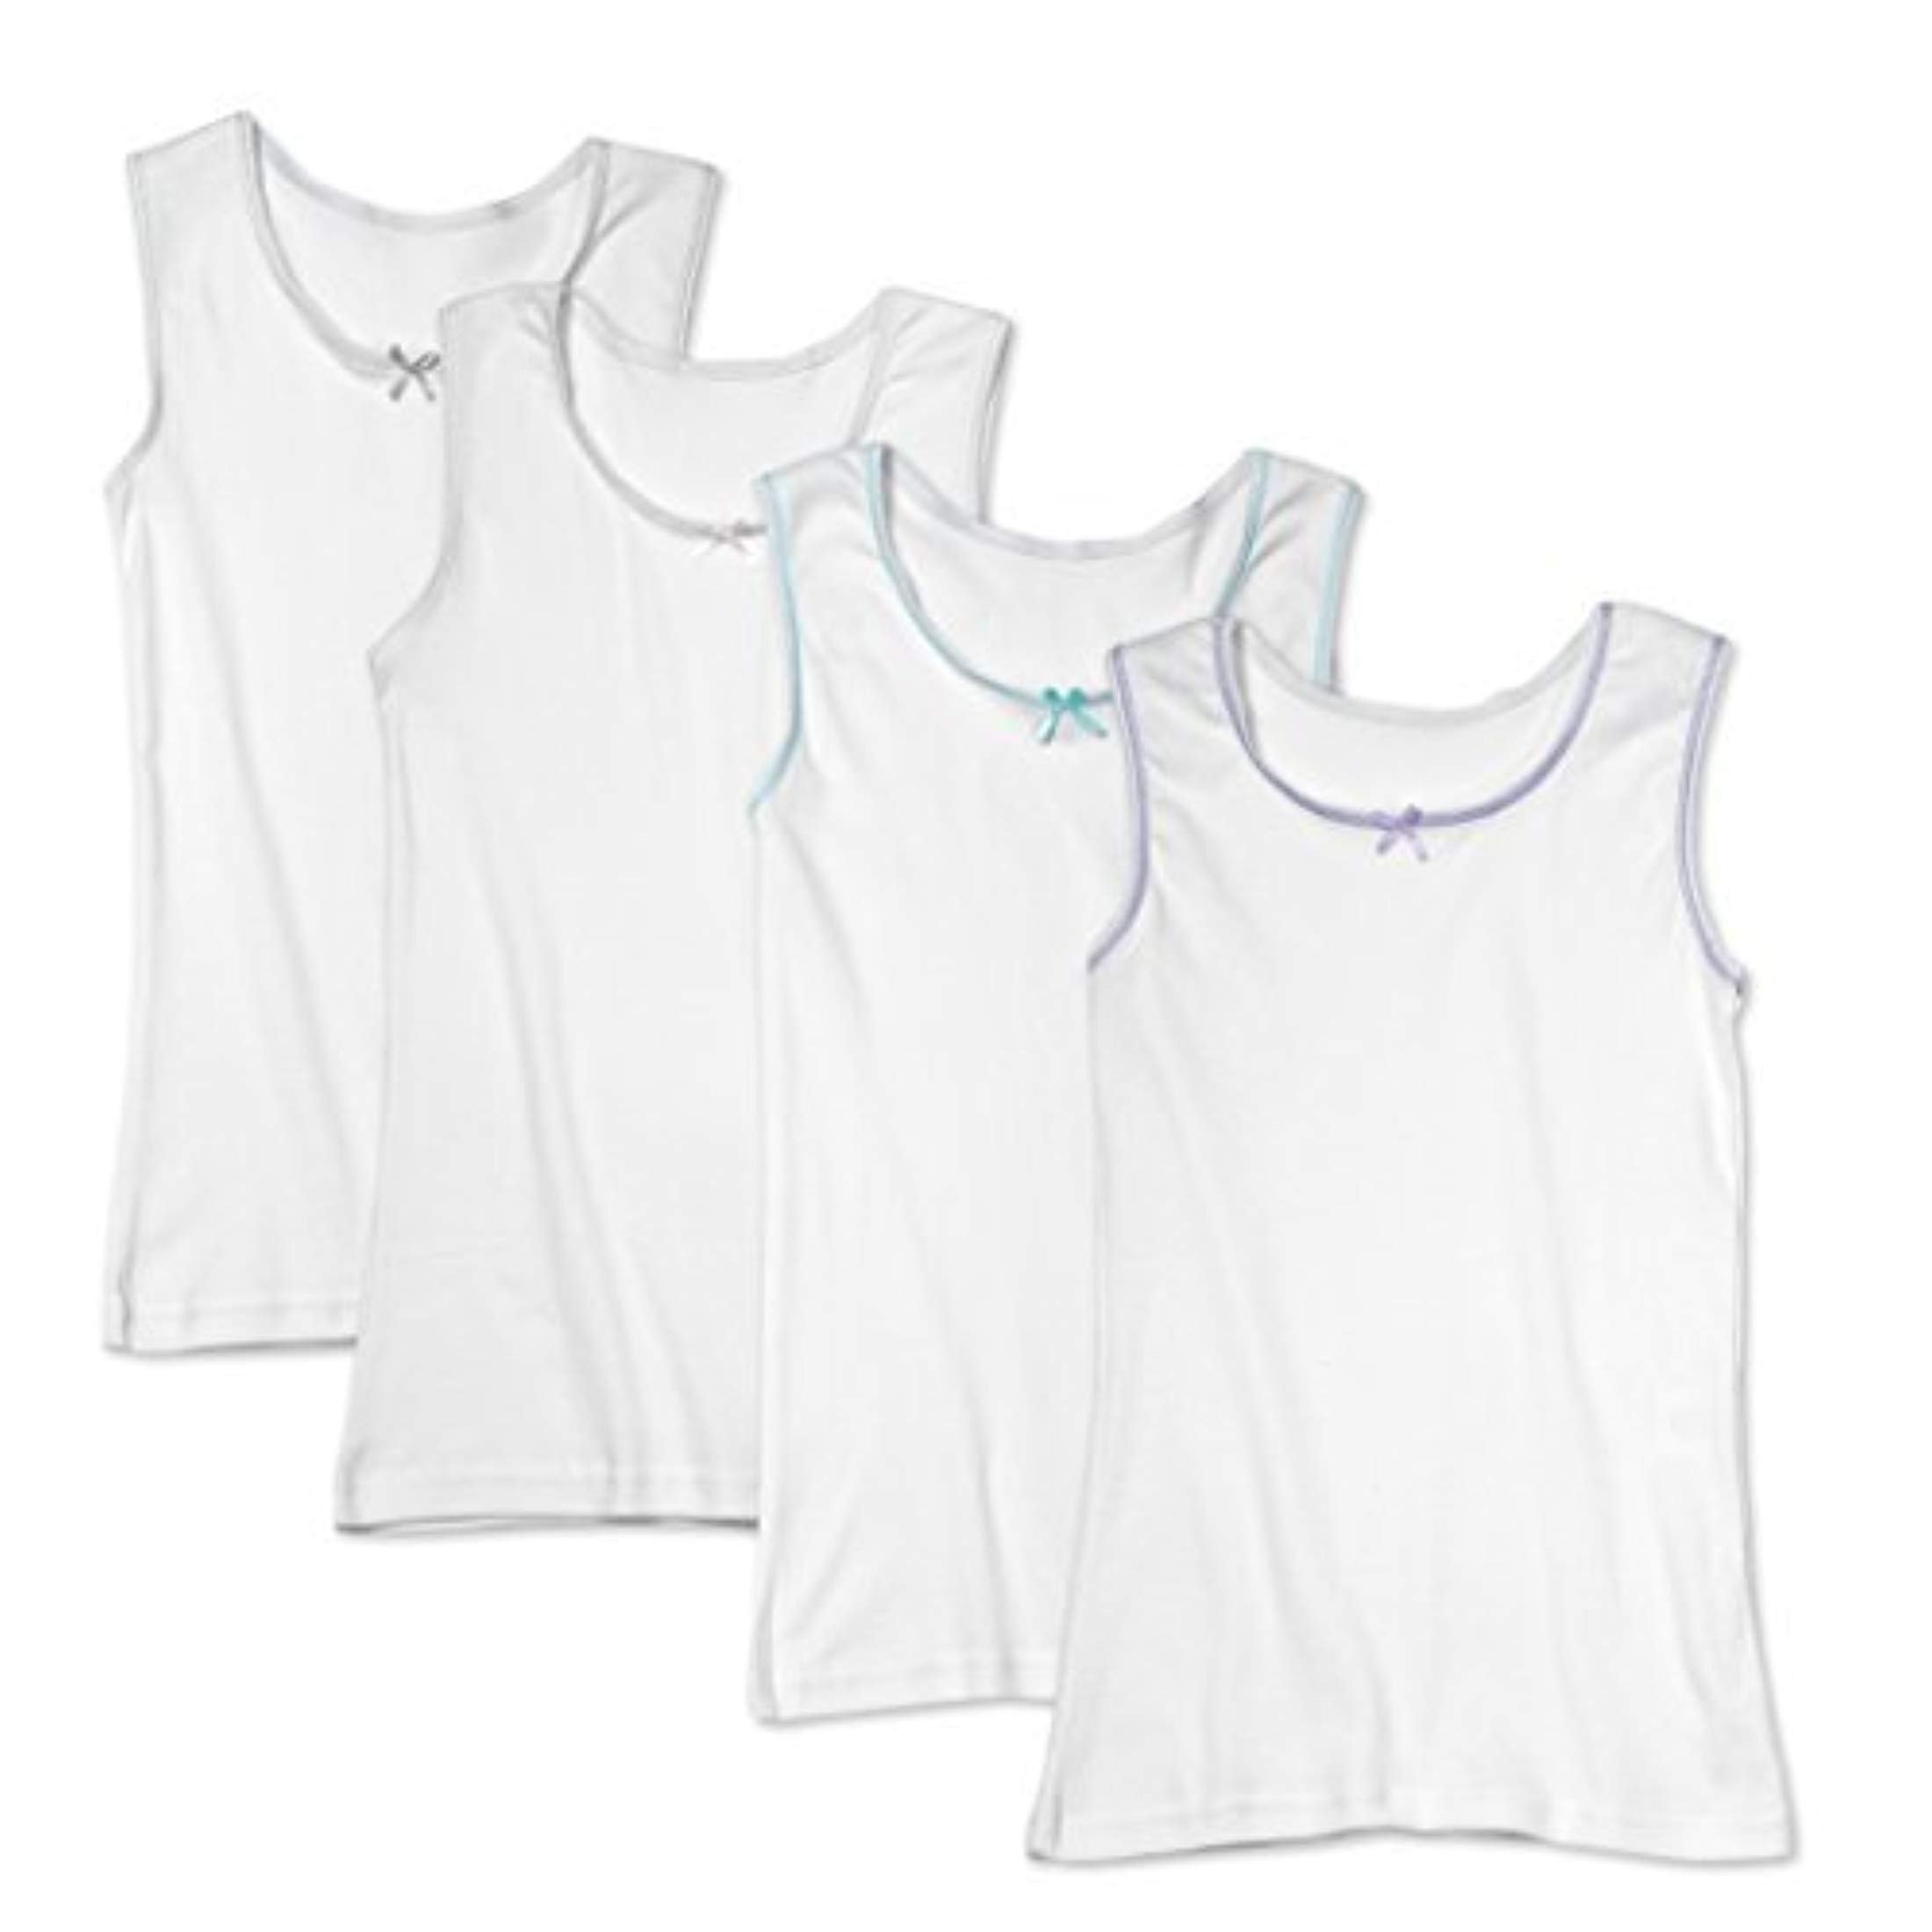 Buyless Fashion Little Girls 100% Cotton White Scoop Neck Undershirt with Colored Trim (4 Pack) 6-7